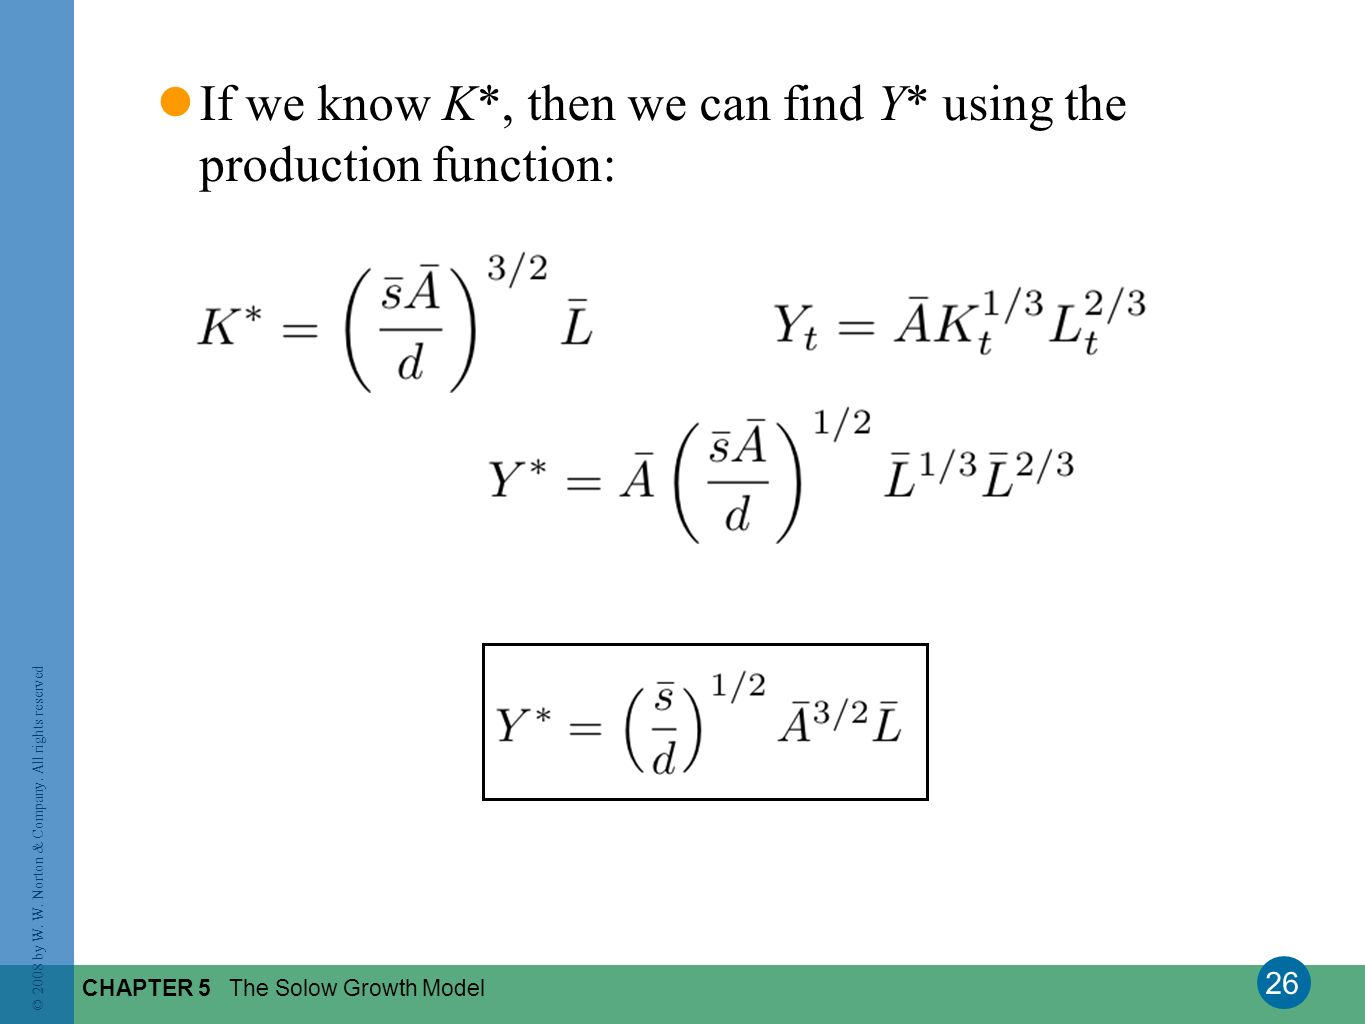 If we know K*, then we can find Y* using the production function: